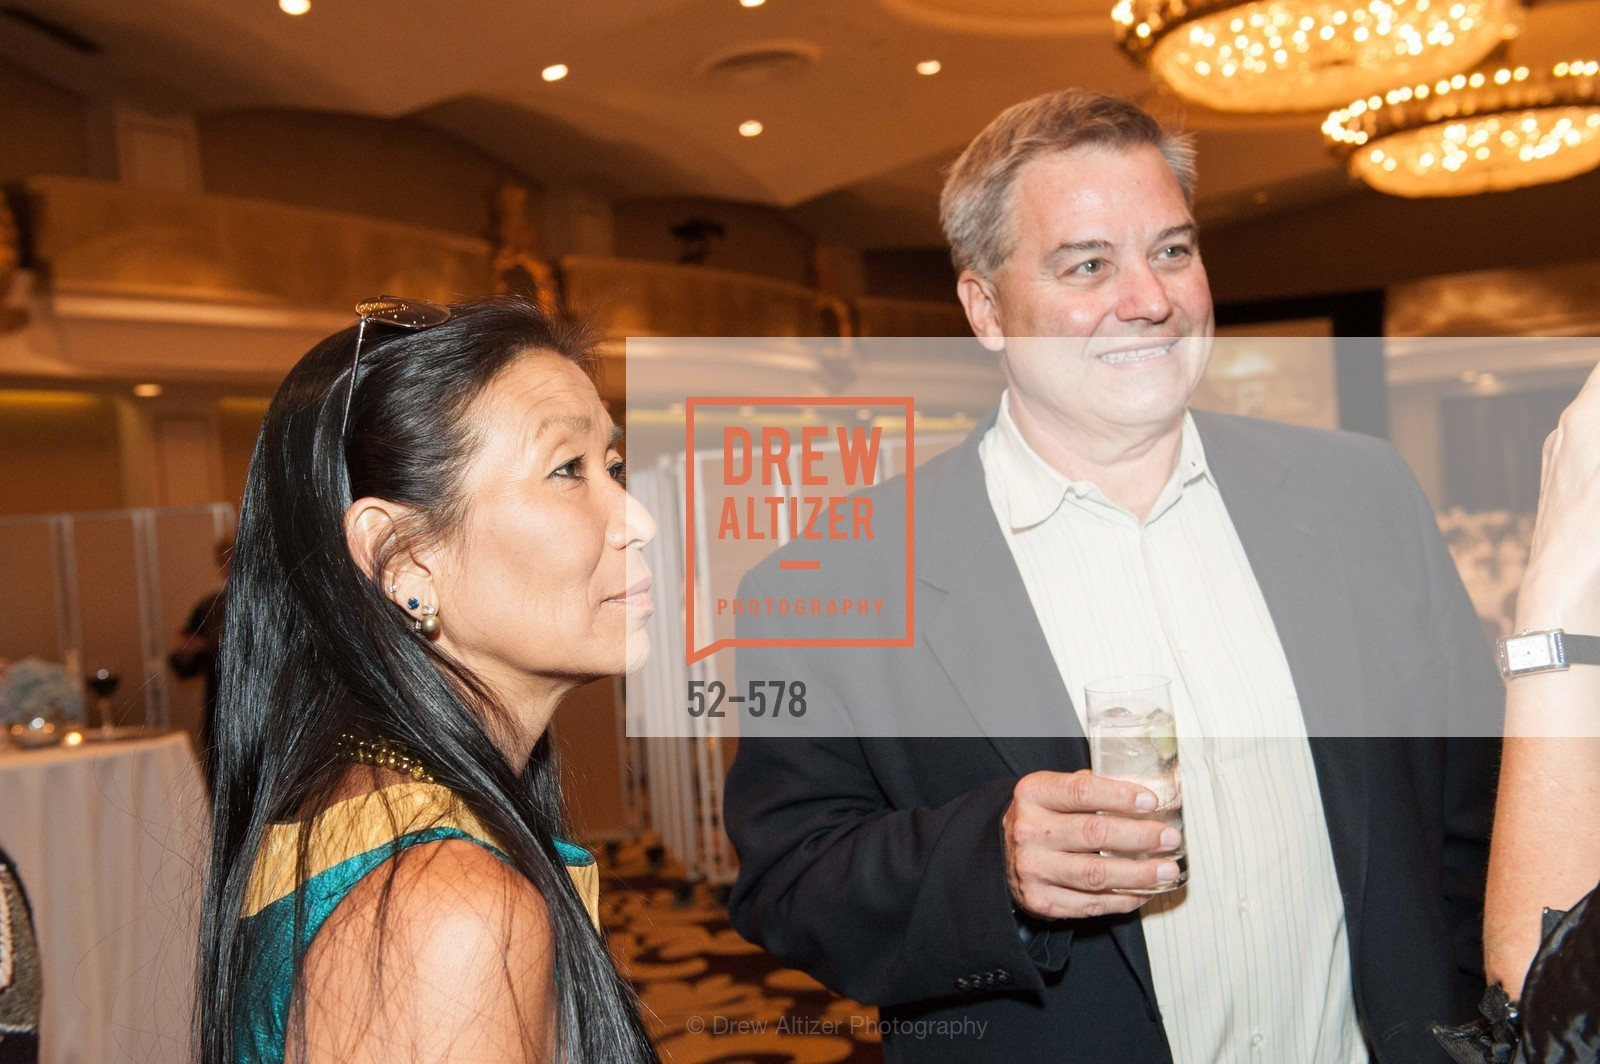 Linda Wallgren, Steven Gorski, HOMELESS PRENATAL Annual Luncheon 2014, US, October 1st, 2014,Drew Altizer, Drew Altizer Photography, full-service agency, private events, San Francisco photographer, photographer california